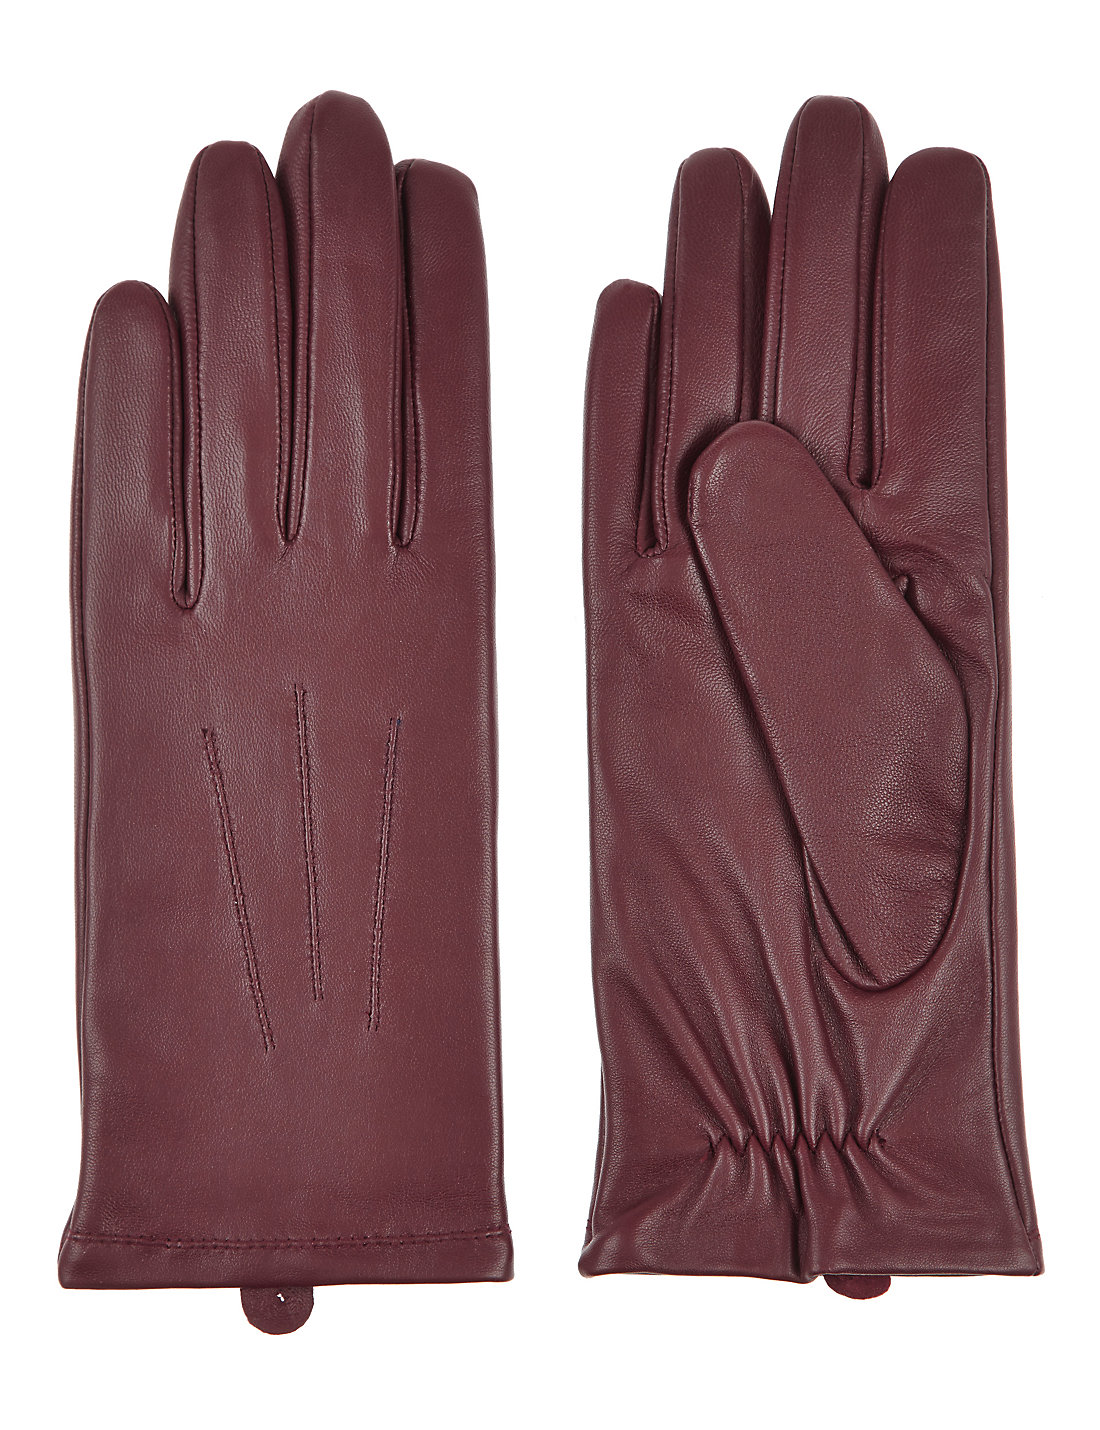 Ladies leather gloves navy - Mens Leather Gloves Marks Spencer Leather Stitch Detail Gloves